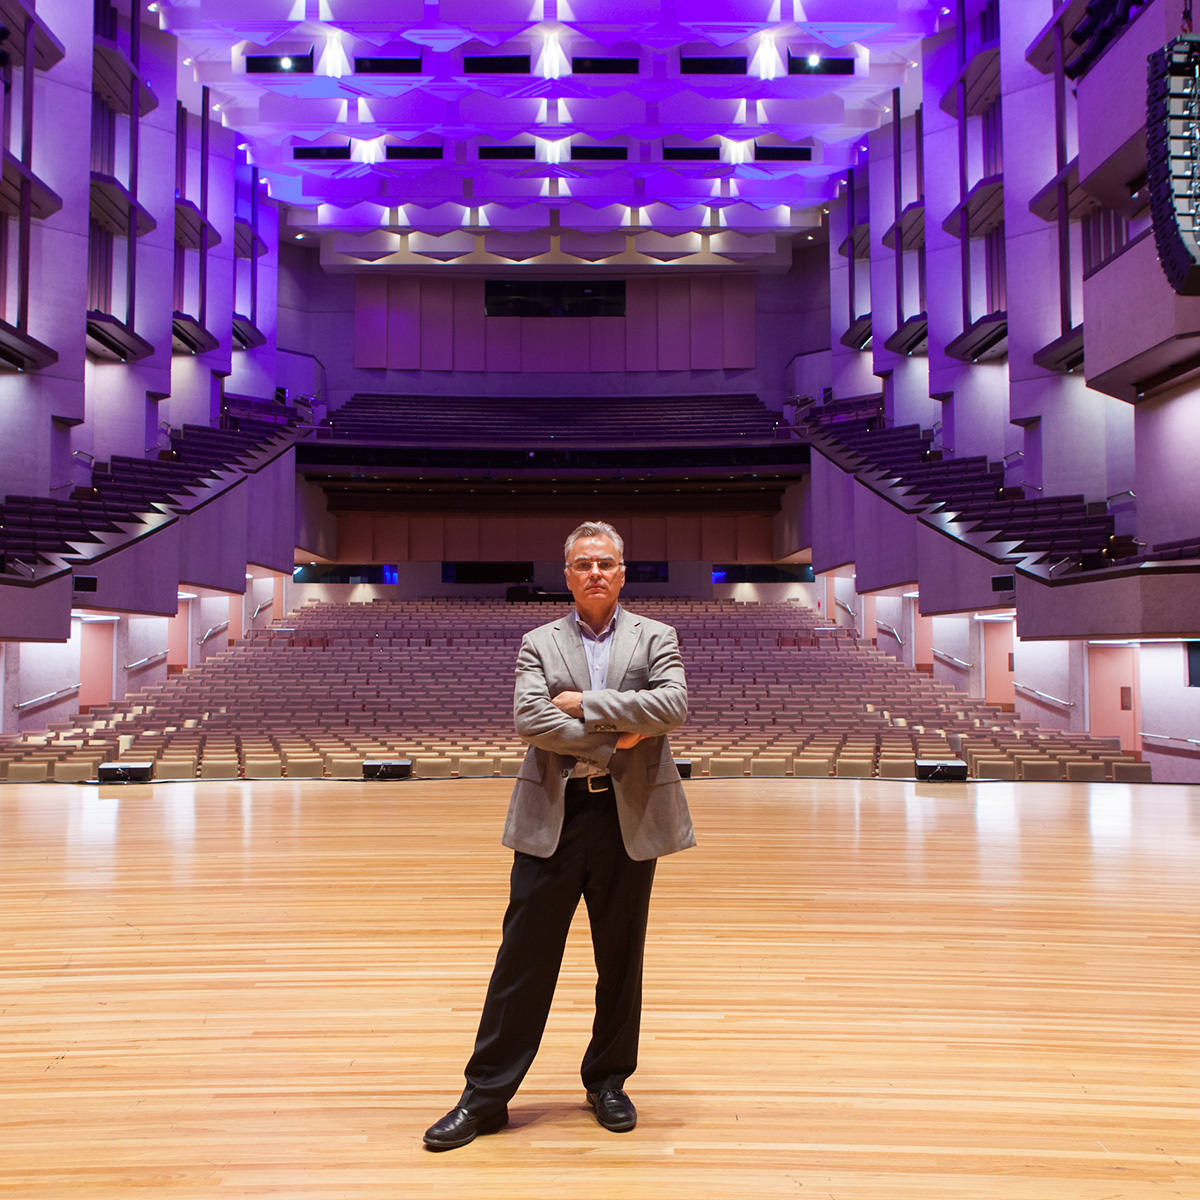 Man standing in auditorium